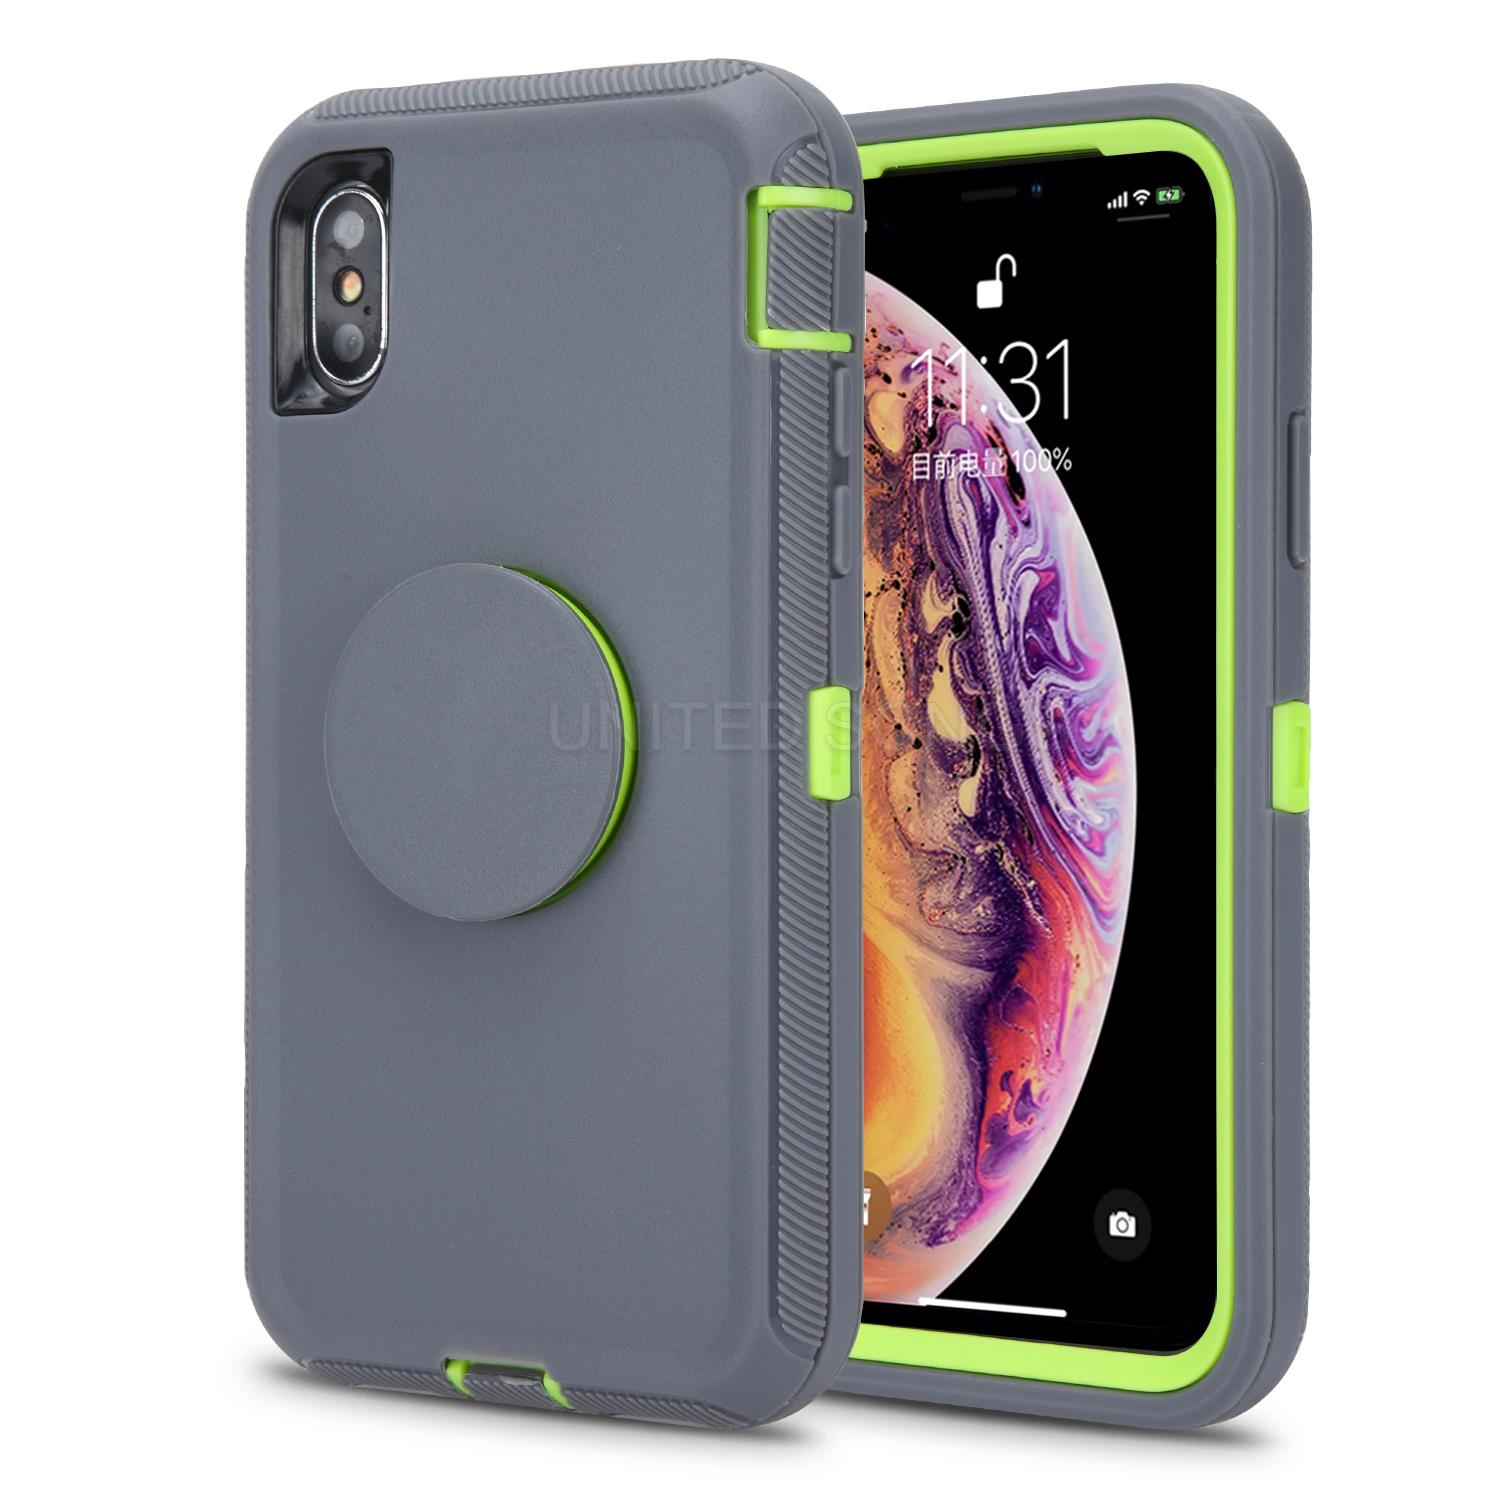 iPhone 11 Pro Max New Heavy Duty Defender Case With Pop Holder Gray/Green